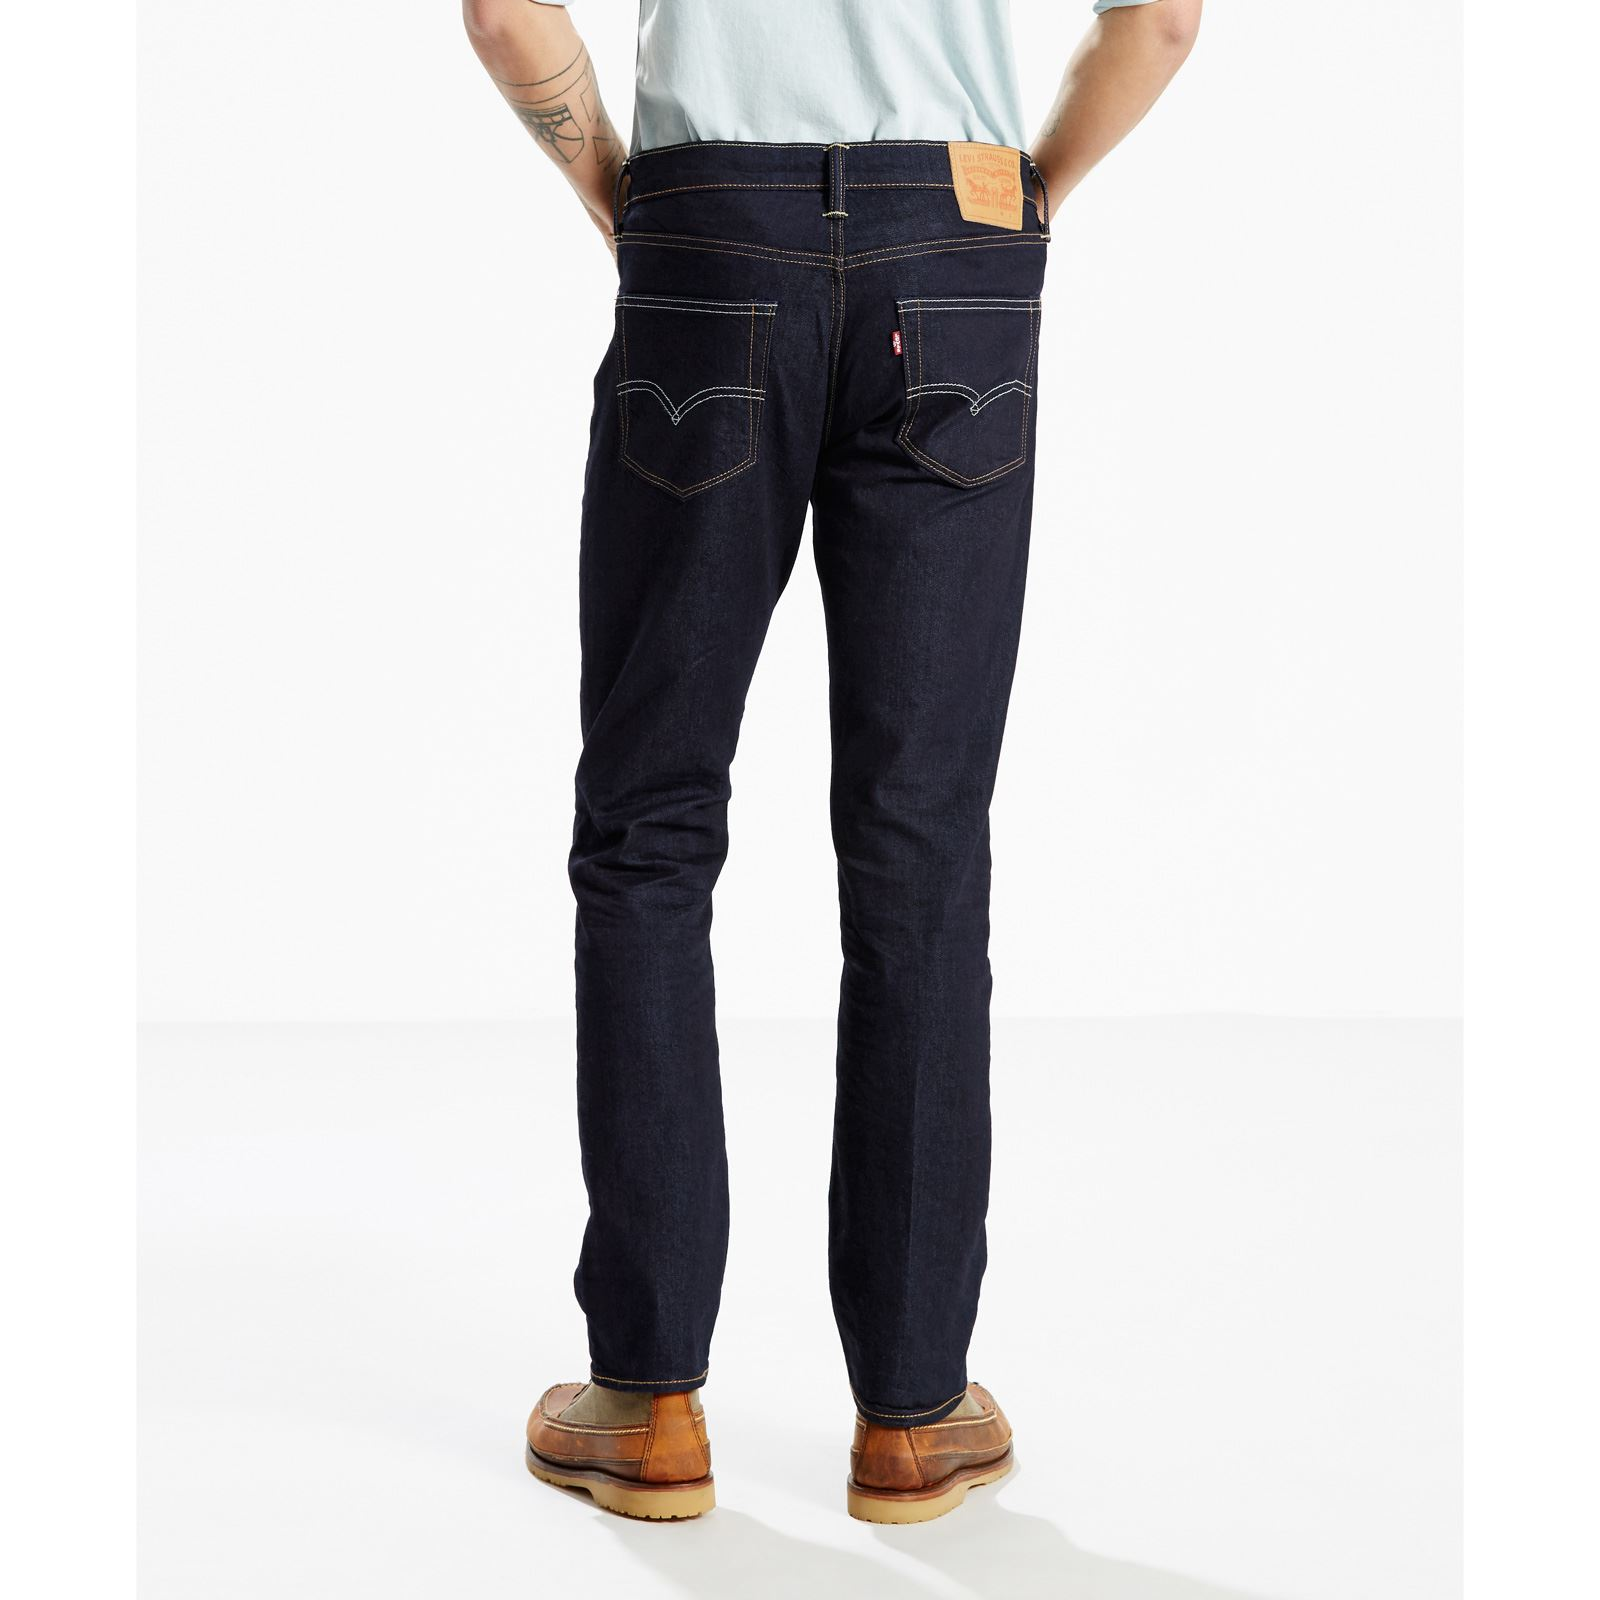 22f8b916d 511 - Slim fit - Rock cod